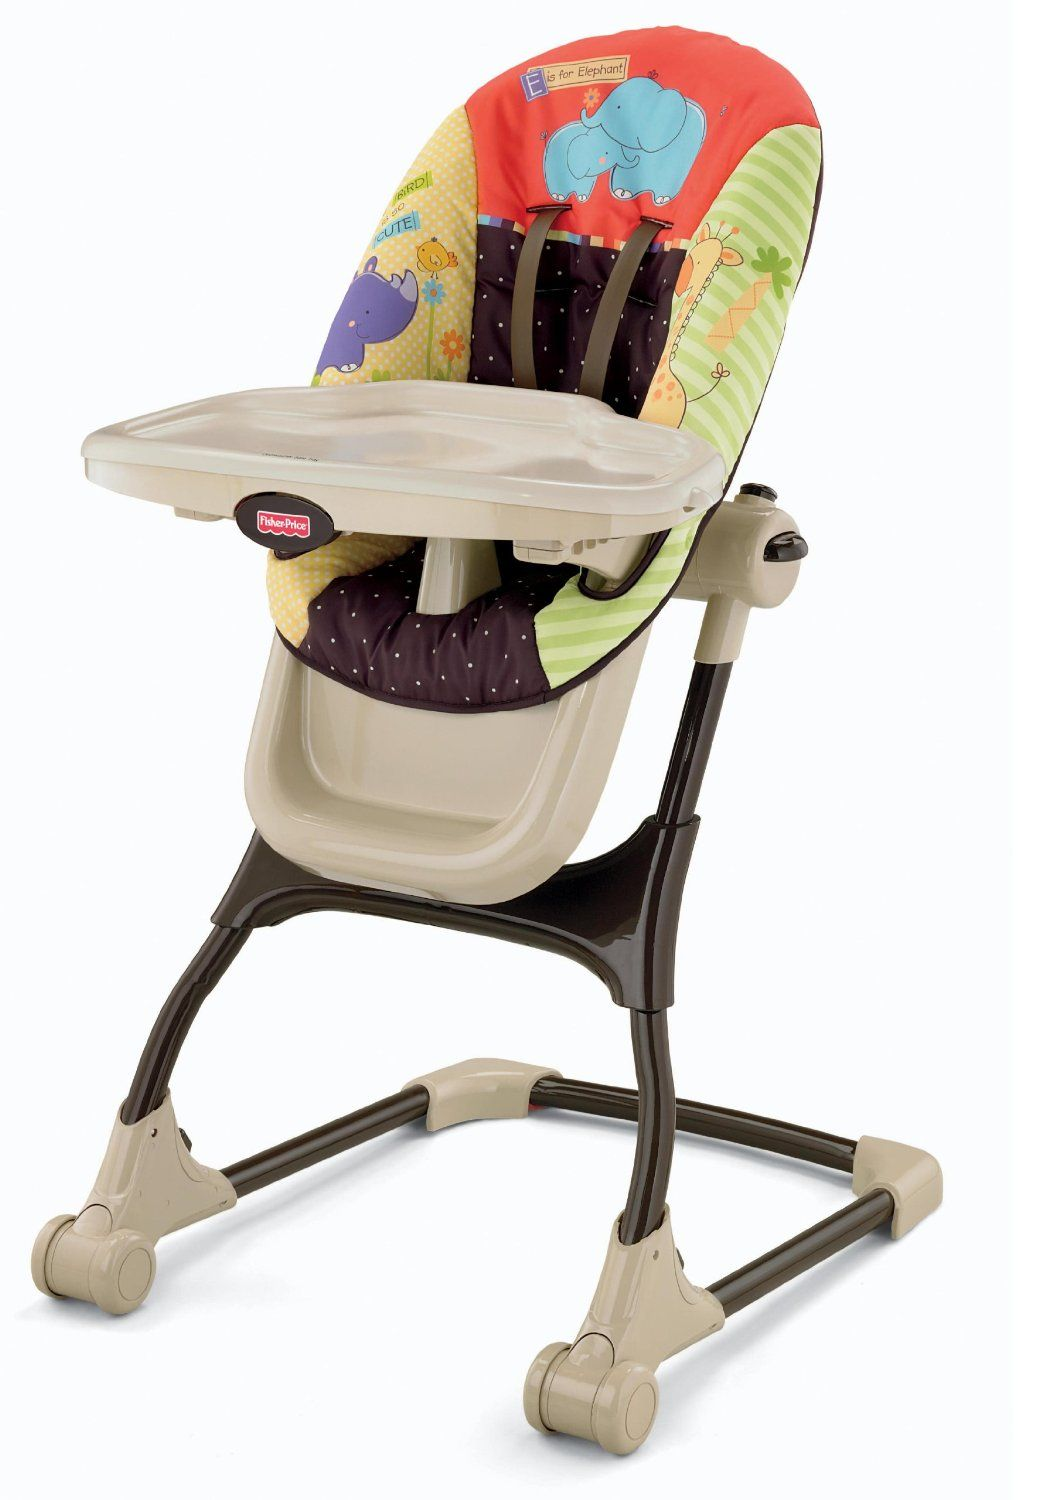 Chair fisher price high chair ez clean - Fisher Price Luv U Zoo Ez Clean High Chair Here S A High Chair That Makes Mealtime So Much More Enjoyable Because Cleanup Is So Easy There S An Easy Clean